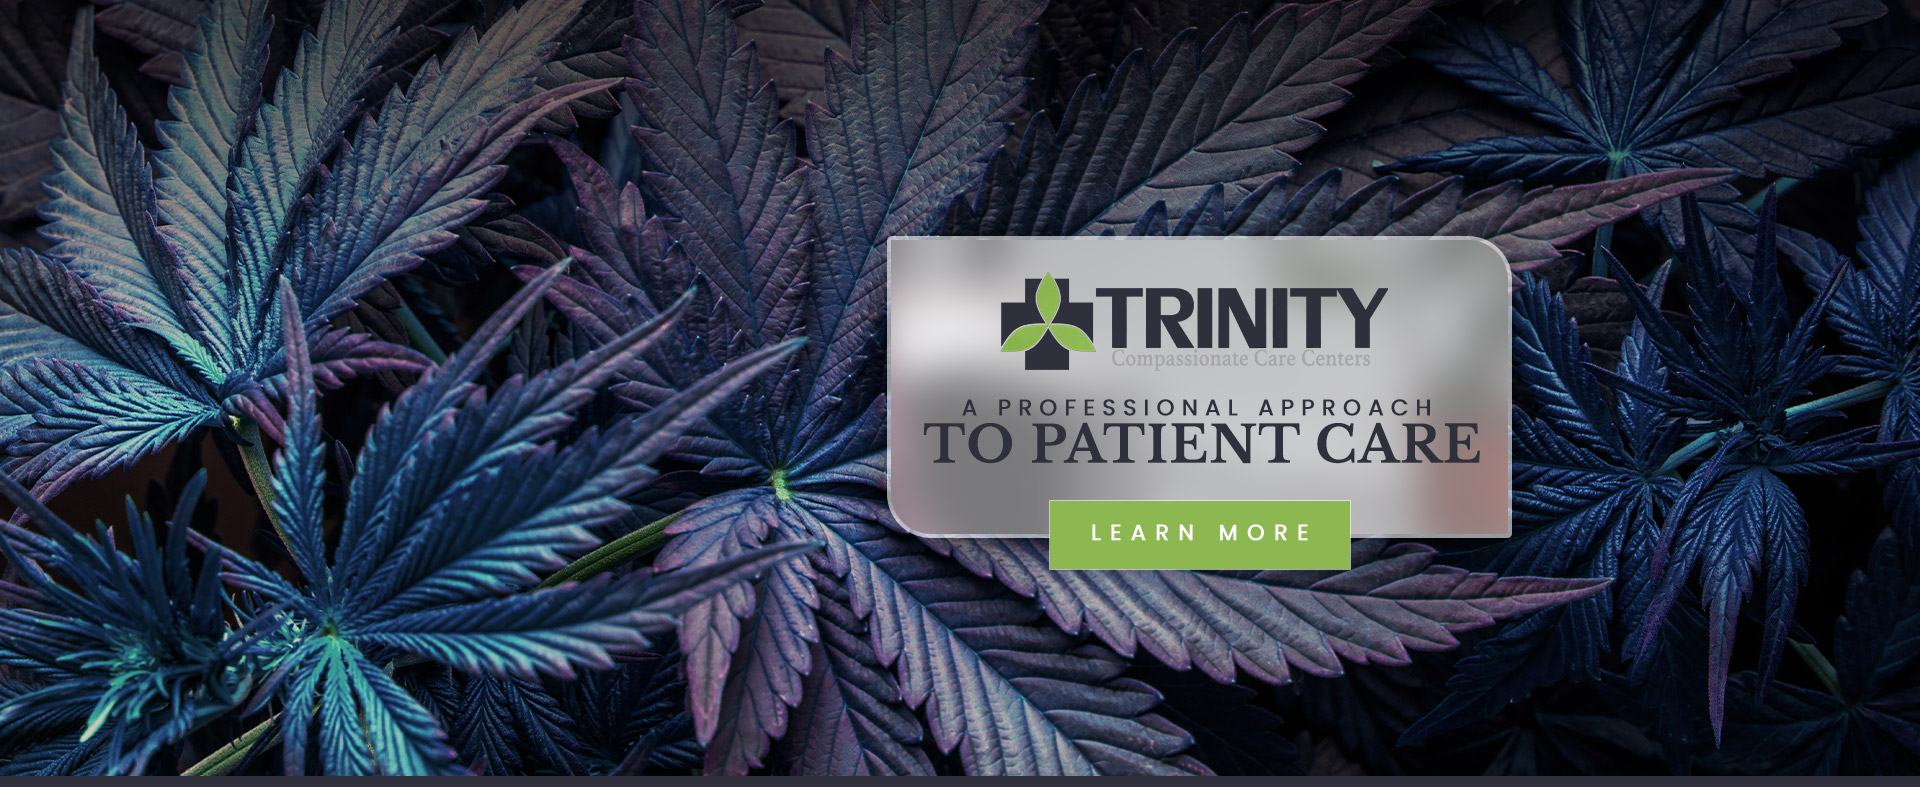 Trinity Patient Care Slider